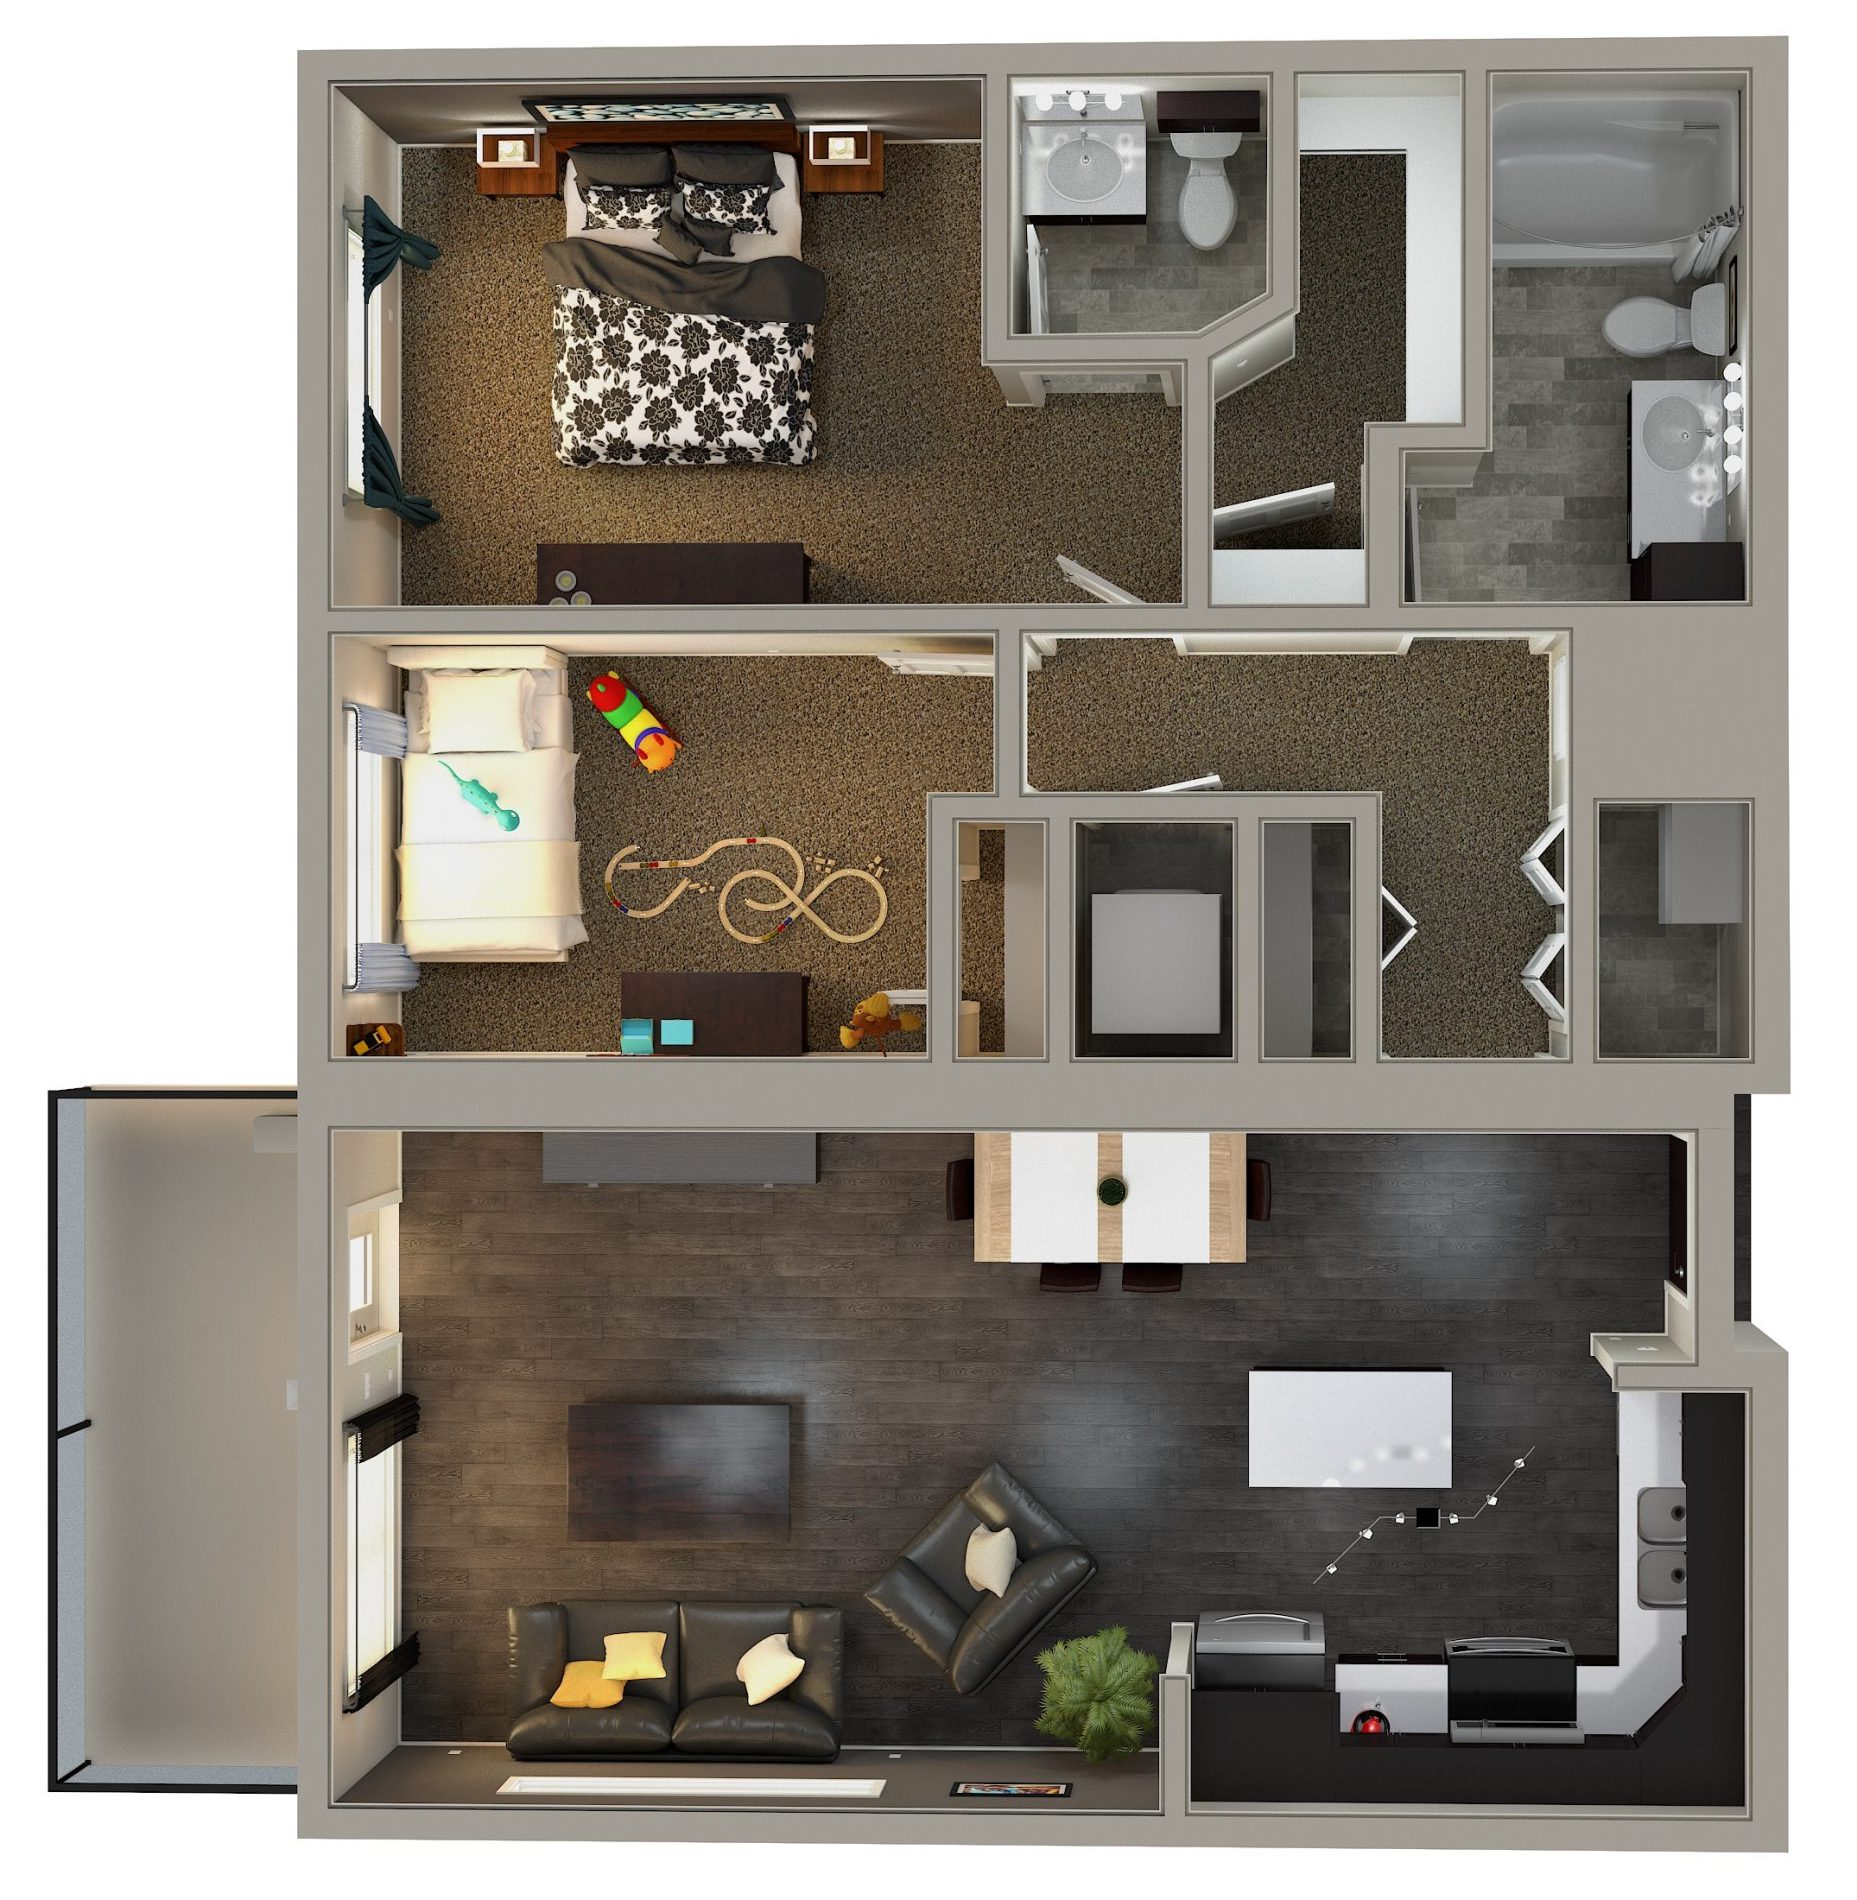 Kensington Flats 2 Bedroom Condo Floor Plan Option #1: 935 sq. ft. plan